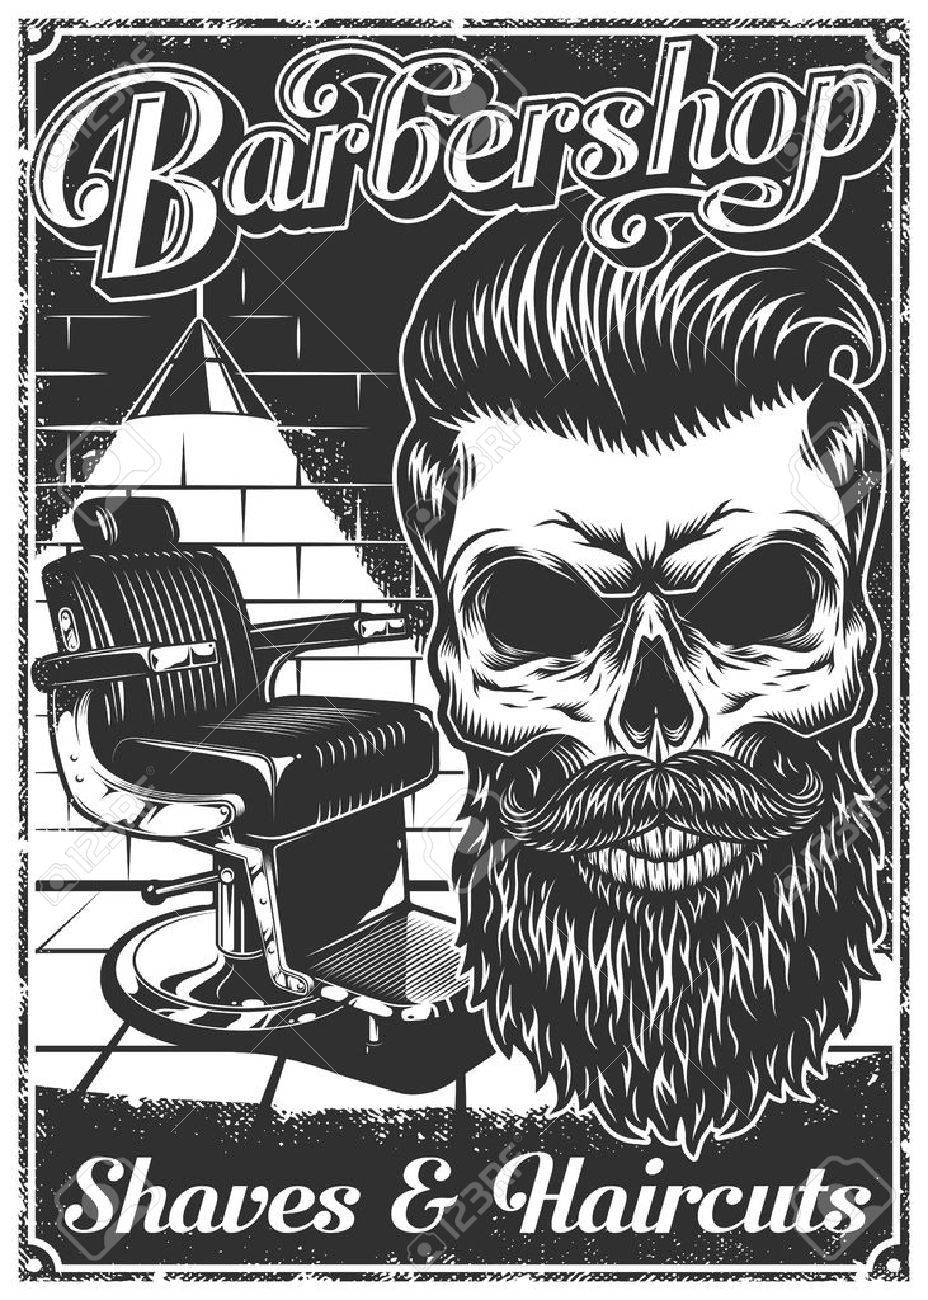 vintage barbershop poster with barber chair skull text and